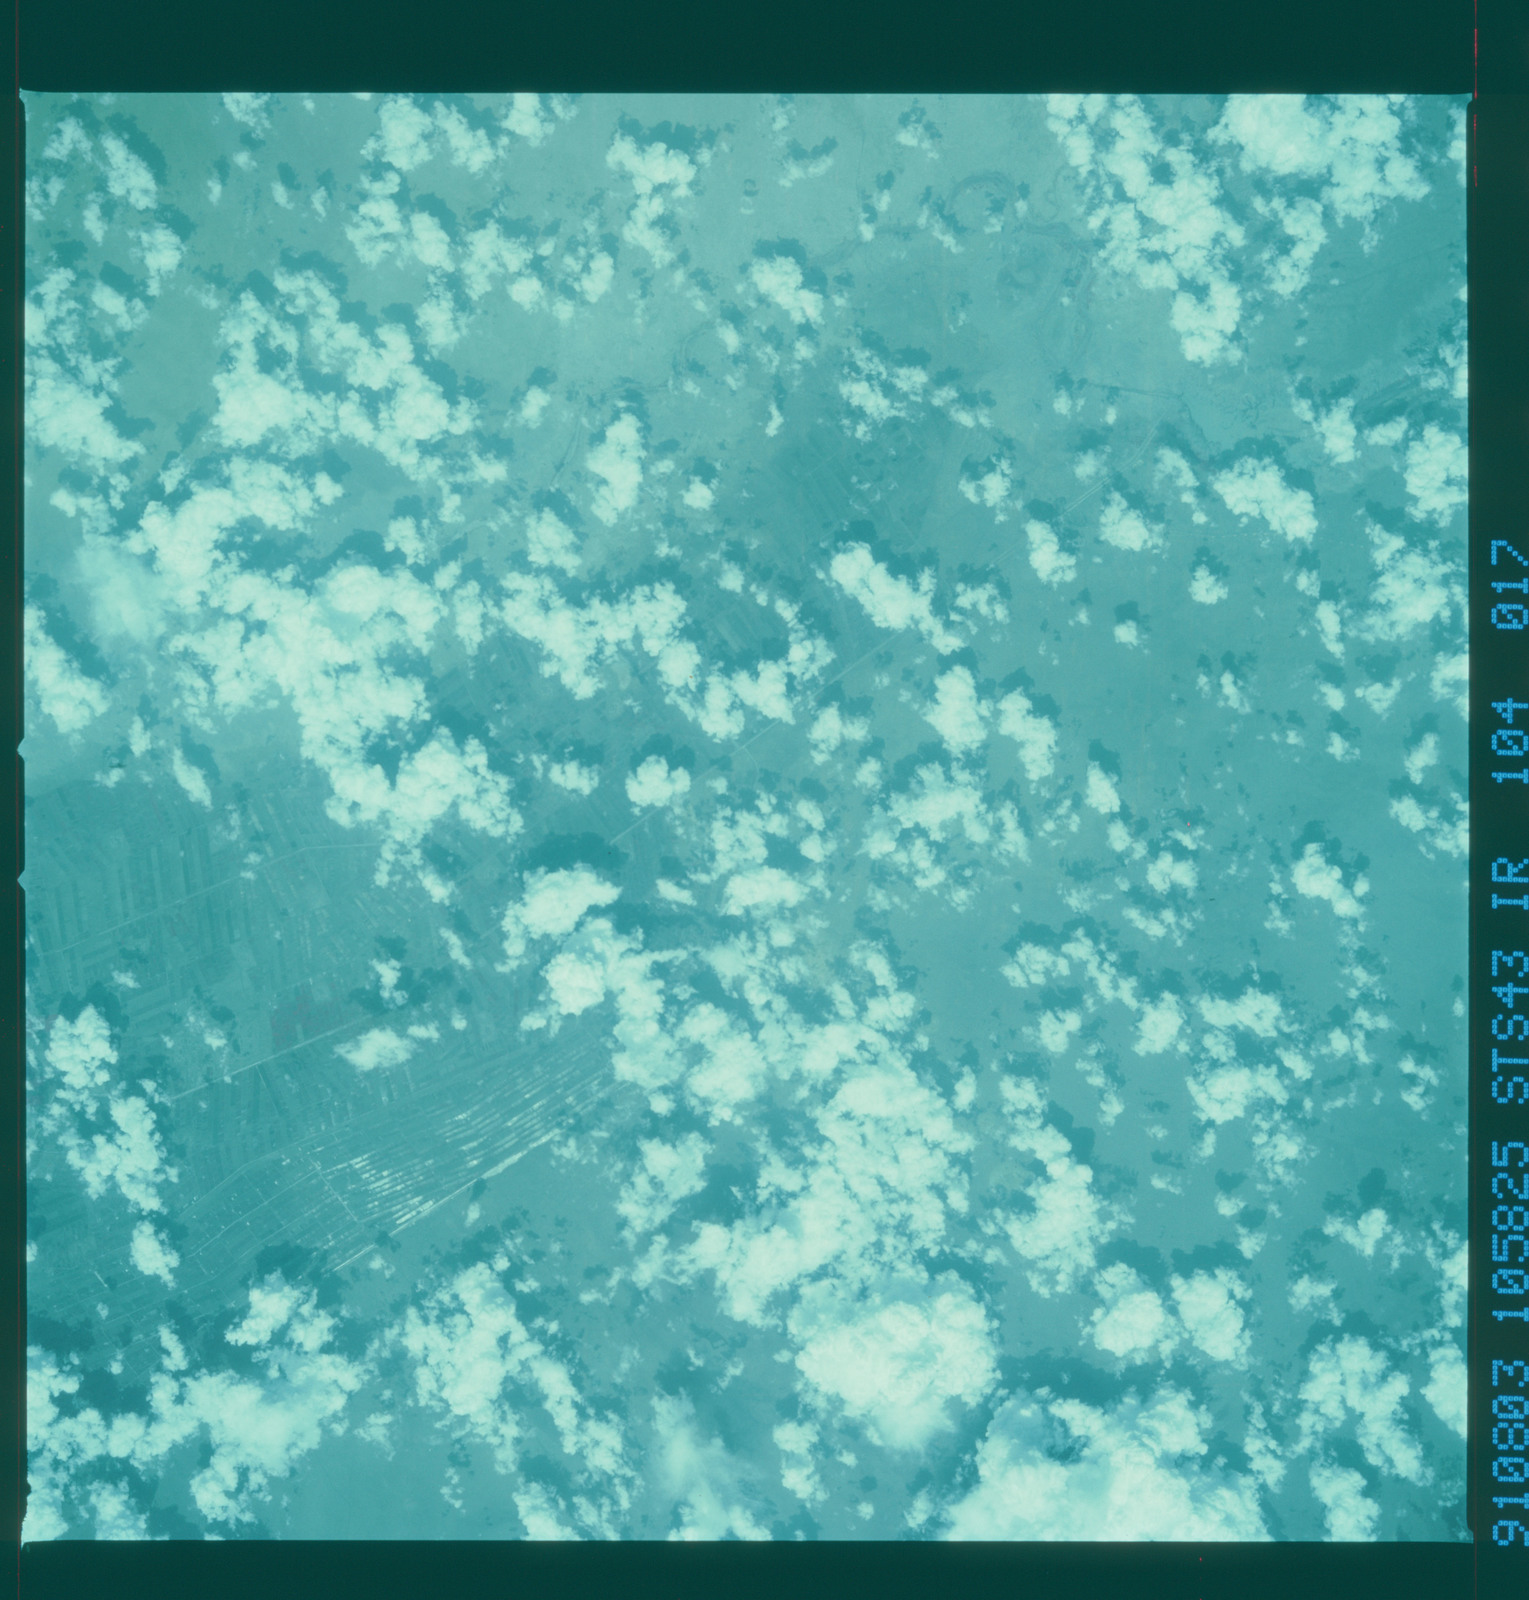 S43-104-017 - STS-043 - STS-43 earth observations